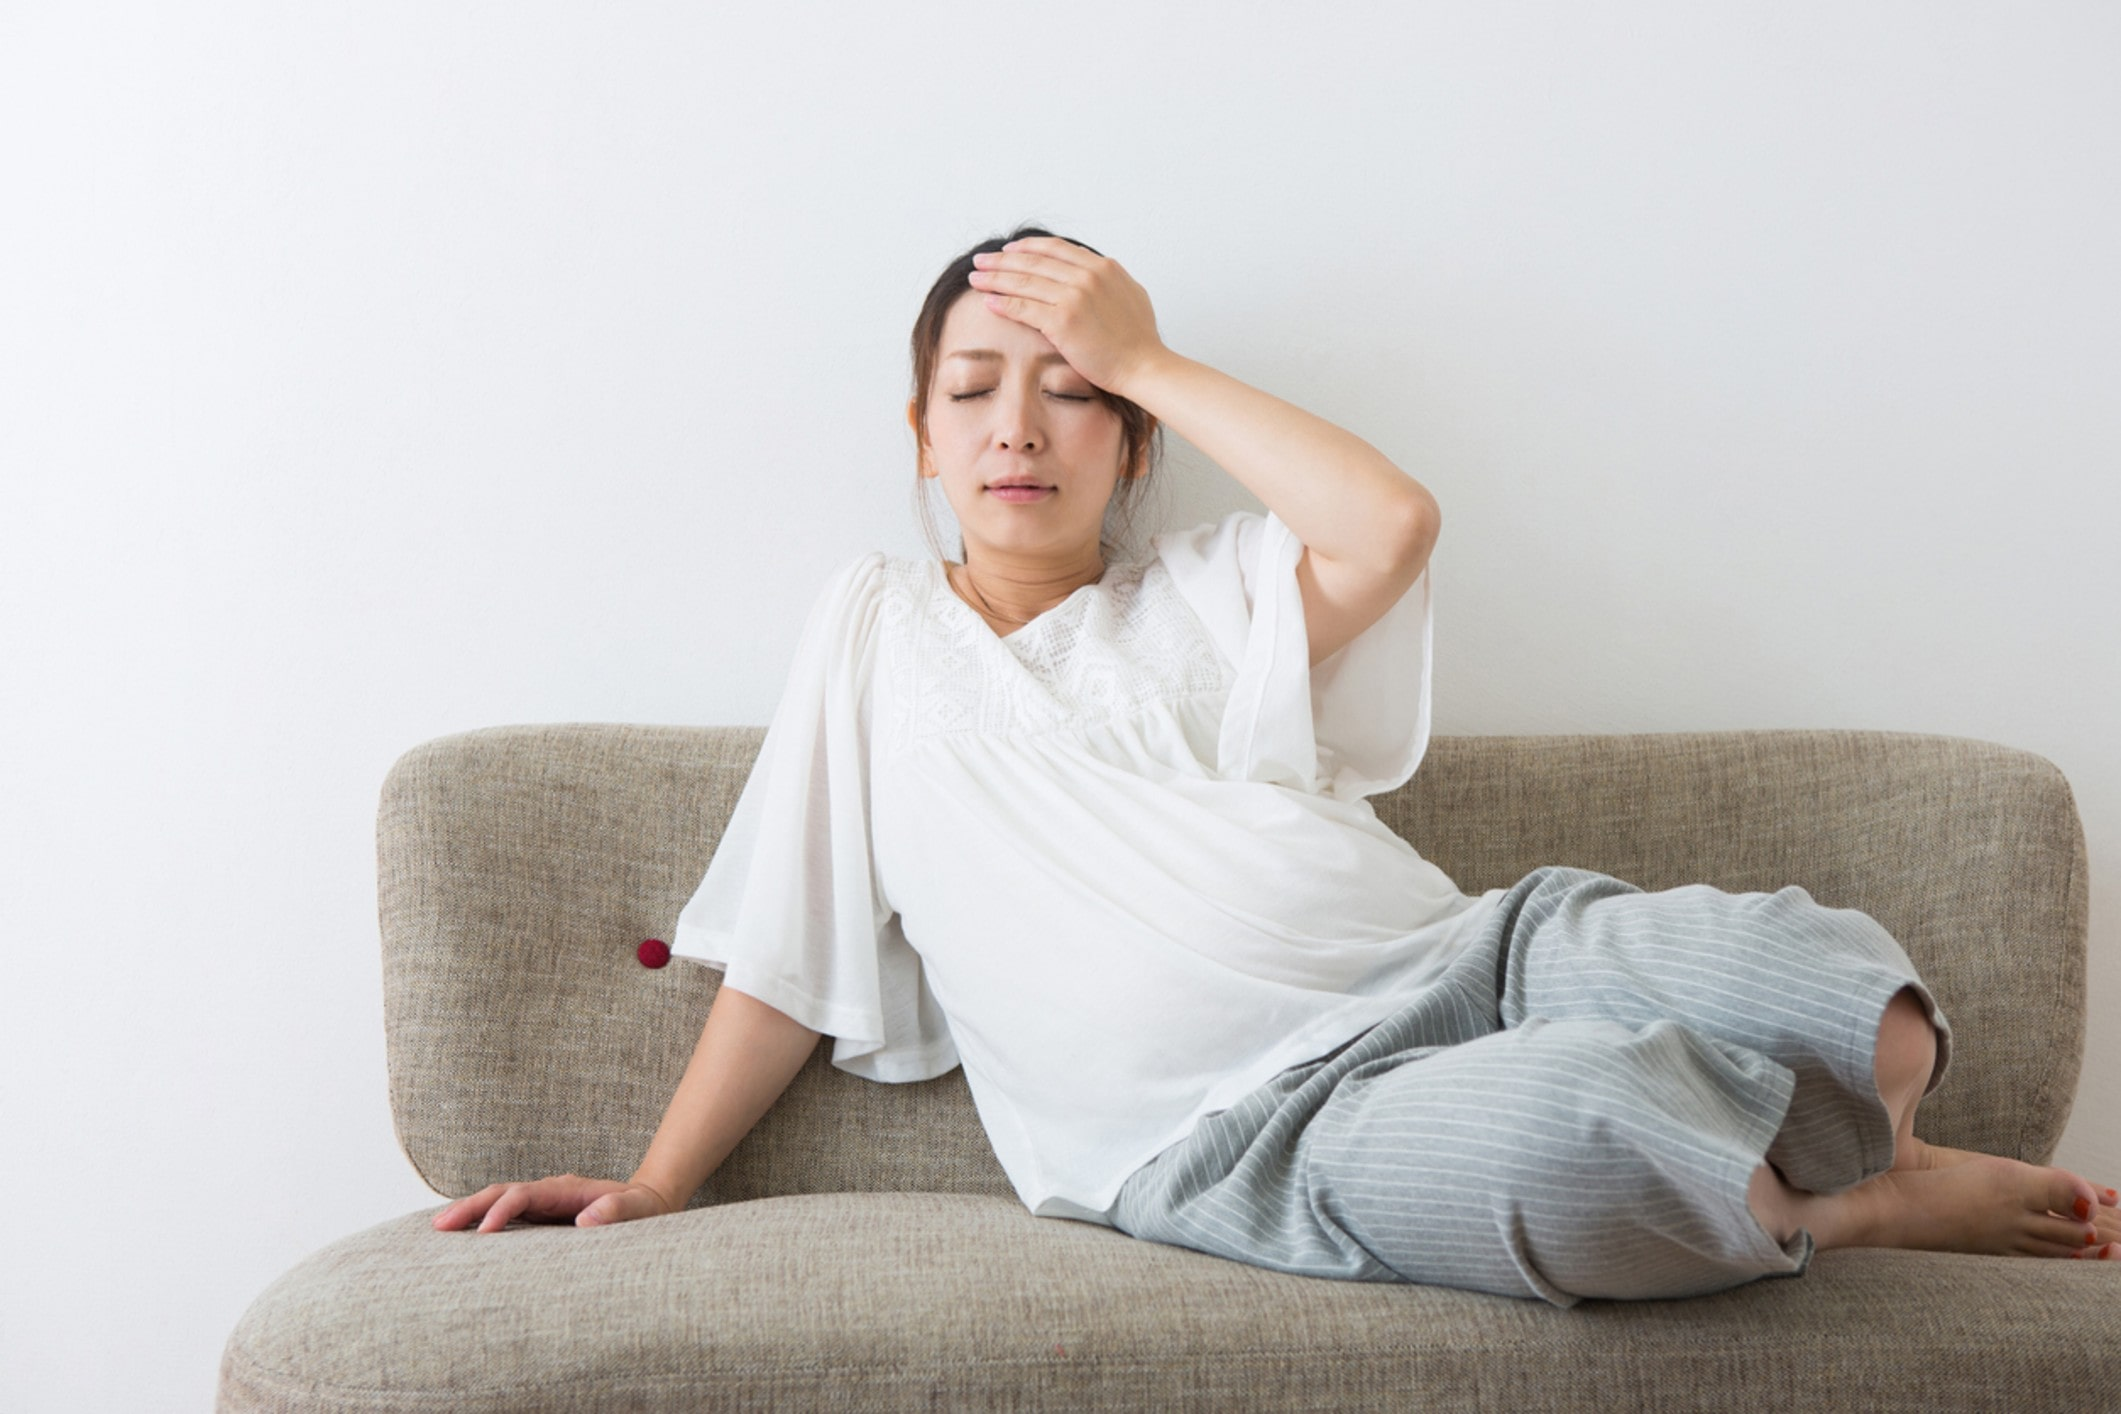 Lady experiencing morning sickness